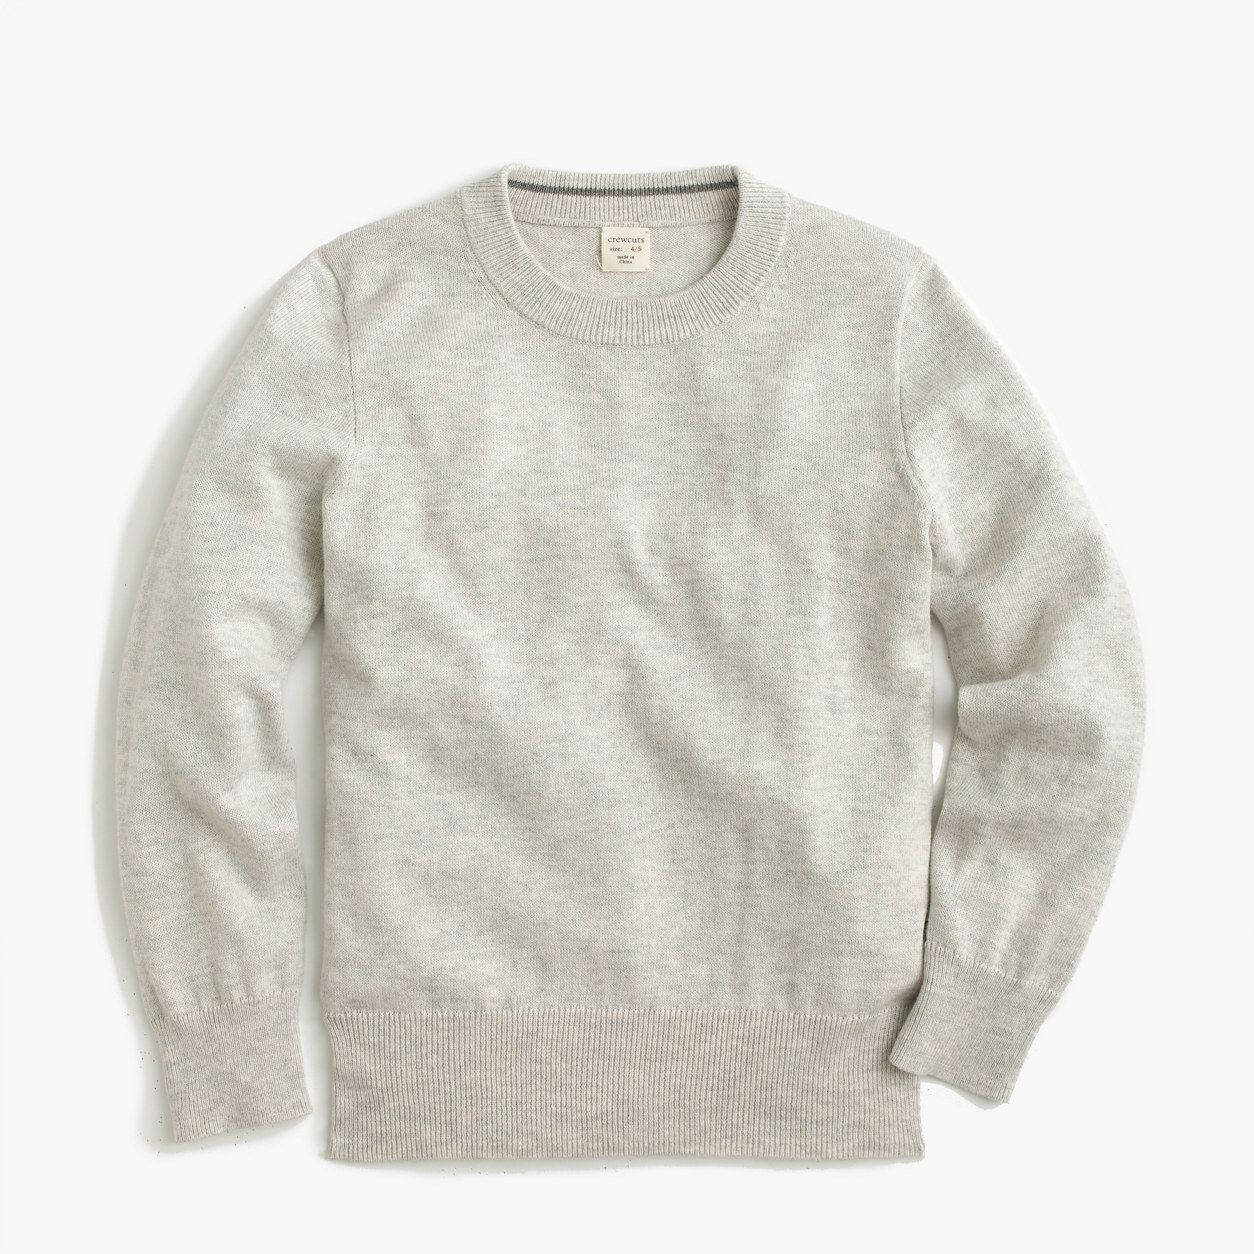 aff657015 crewcuts Boys Cotton-Cashmere Crewneck Sweater (Size 6-7 Kid) | Products